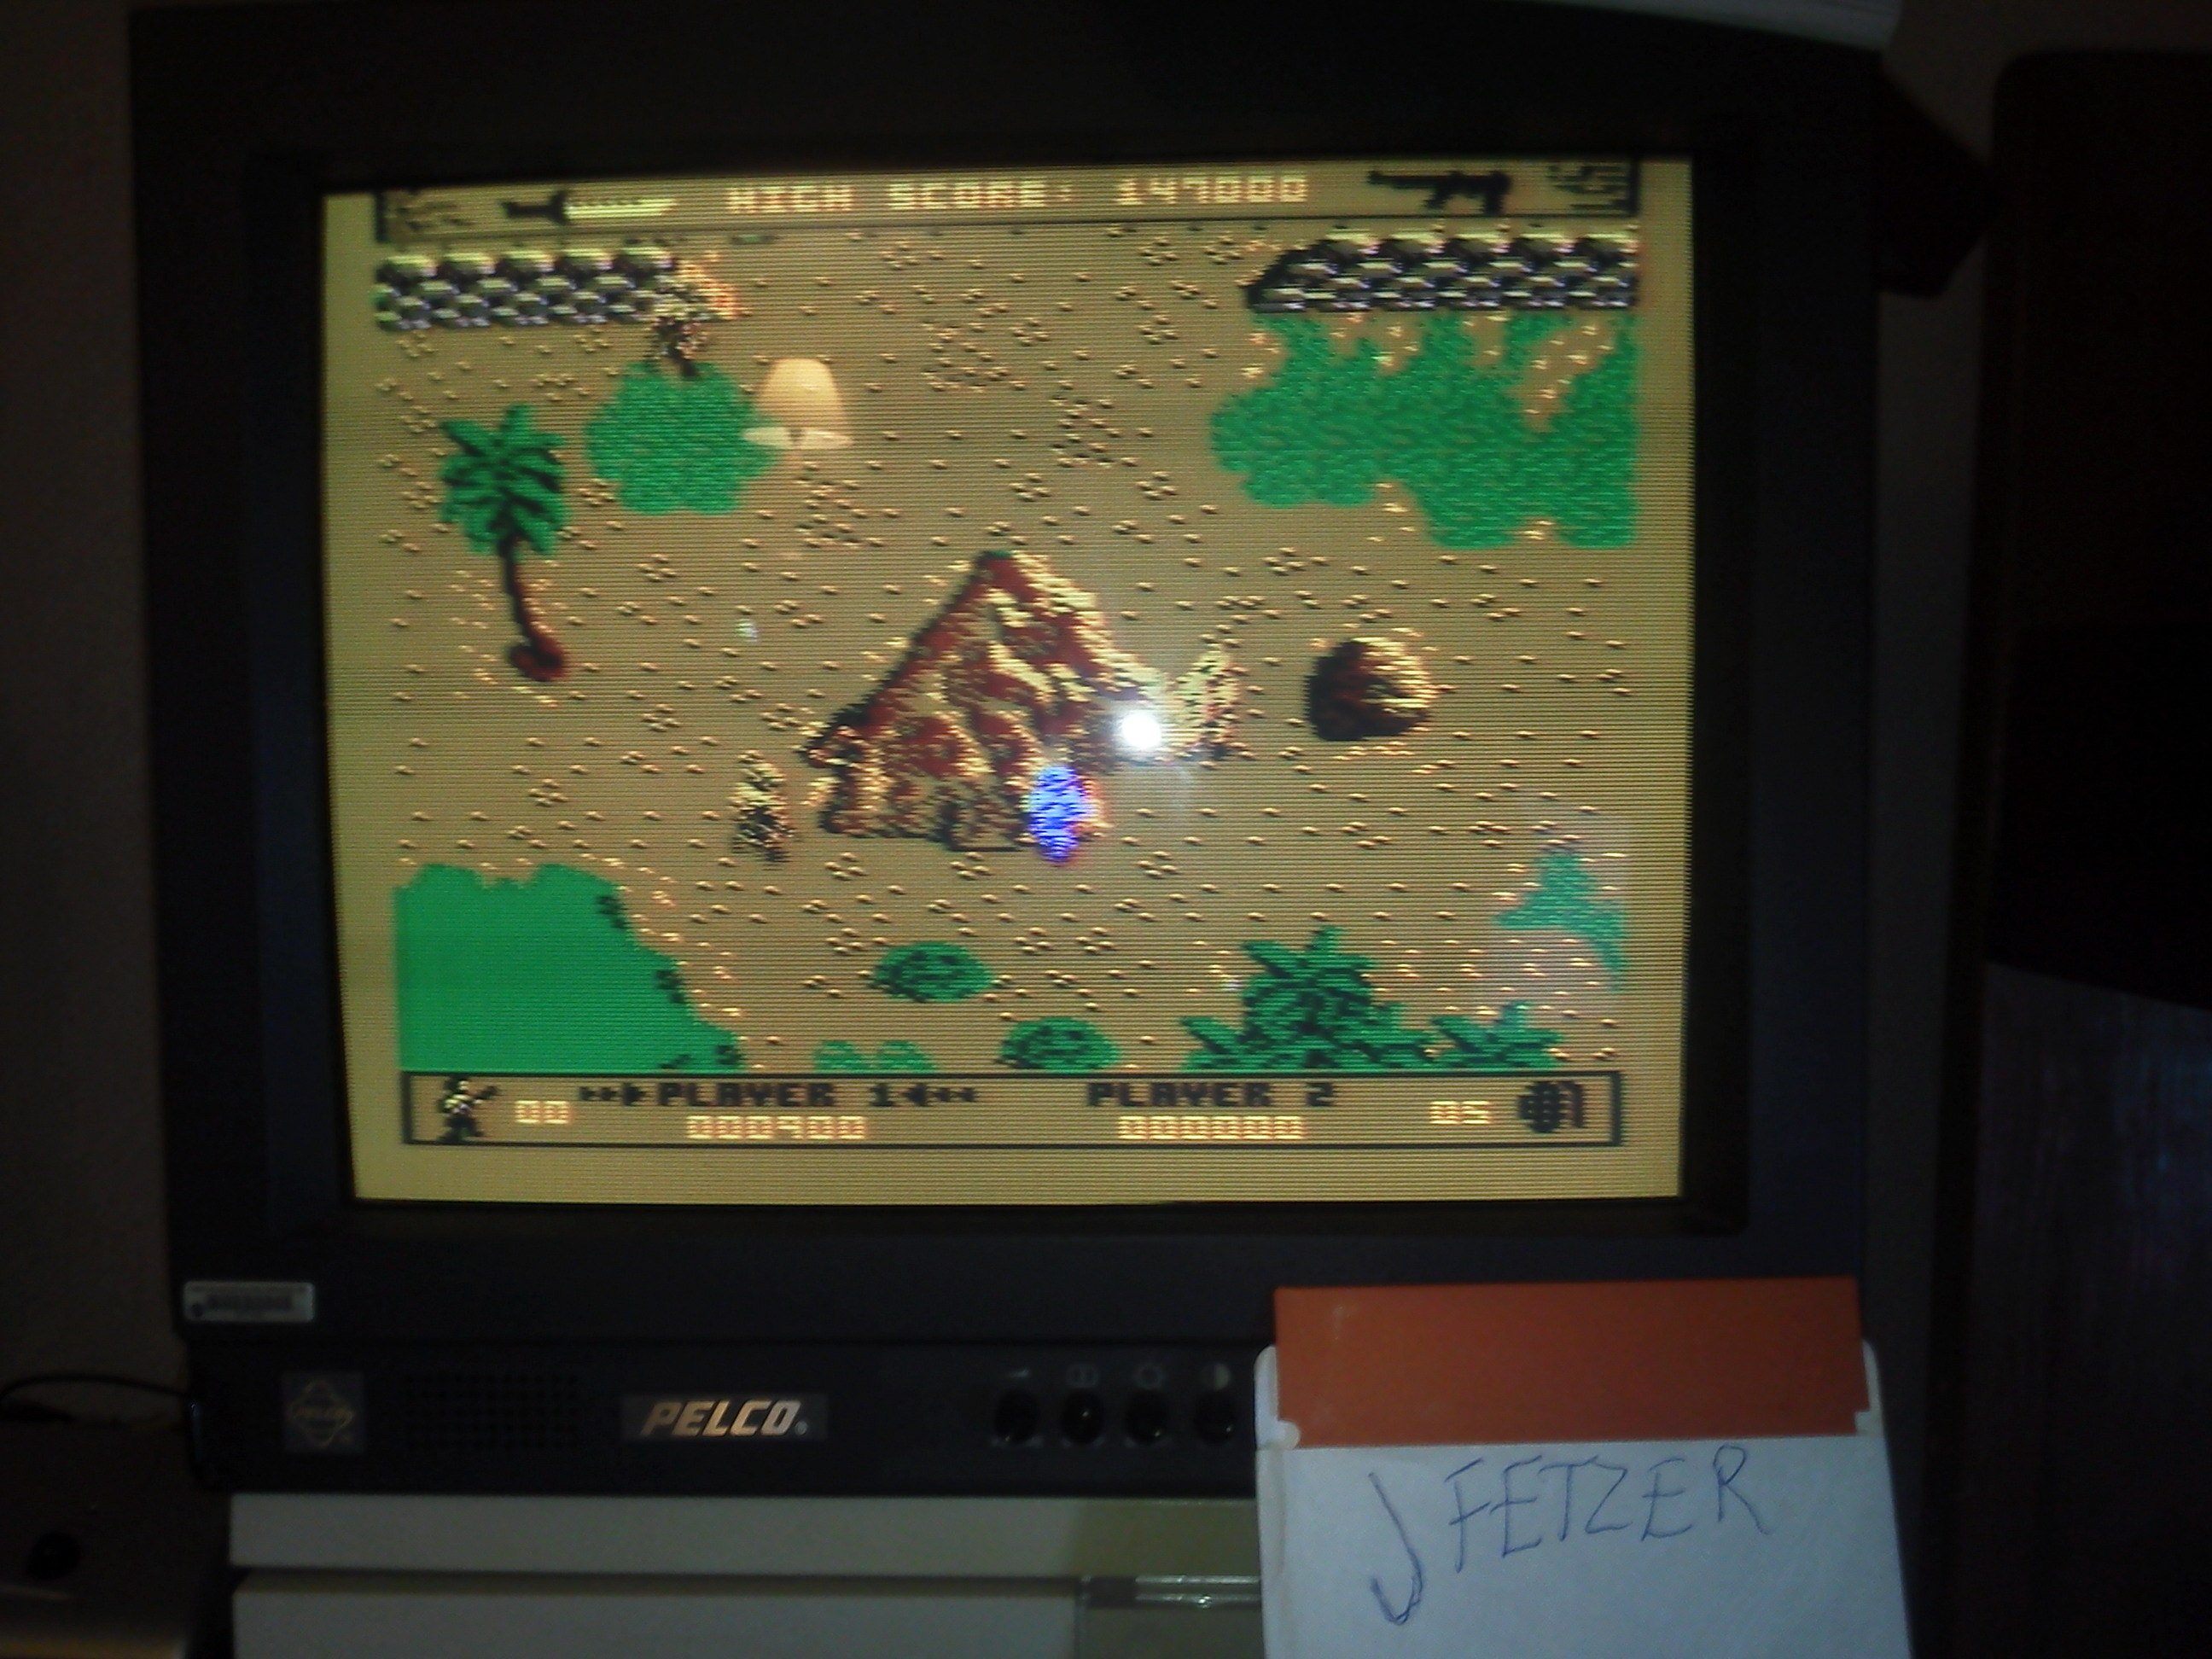 jfetzer: Commando [Beginner] (Atari 400/800/XL/XE) 147,000 points on 2015-01-11 13:32:35